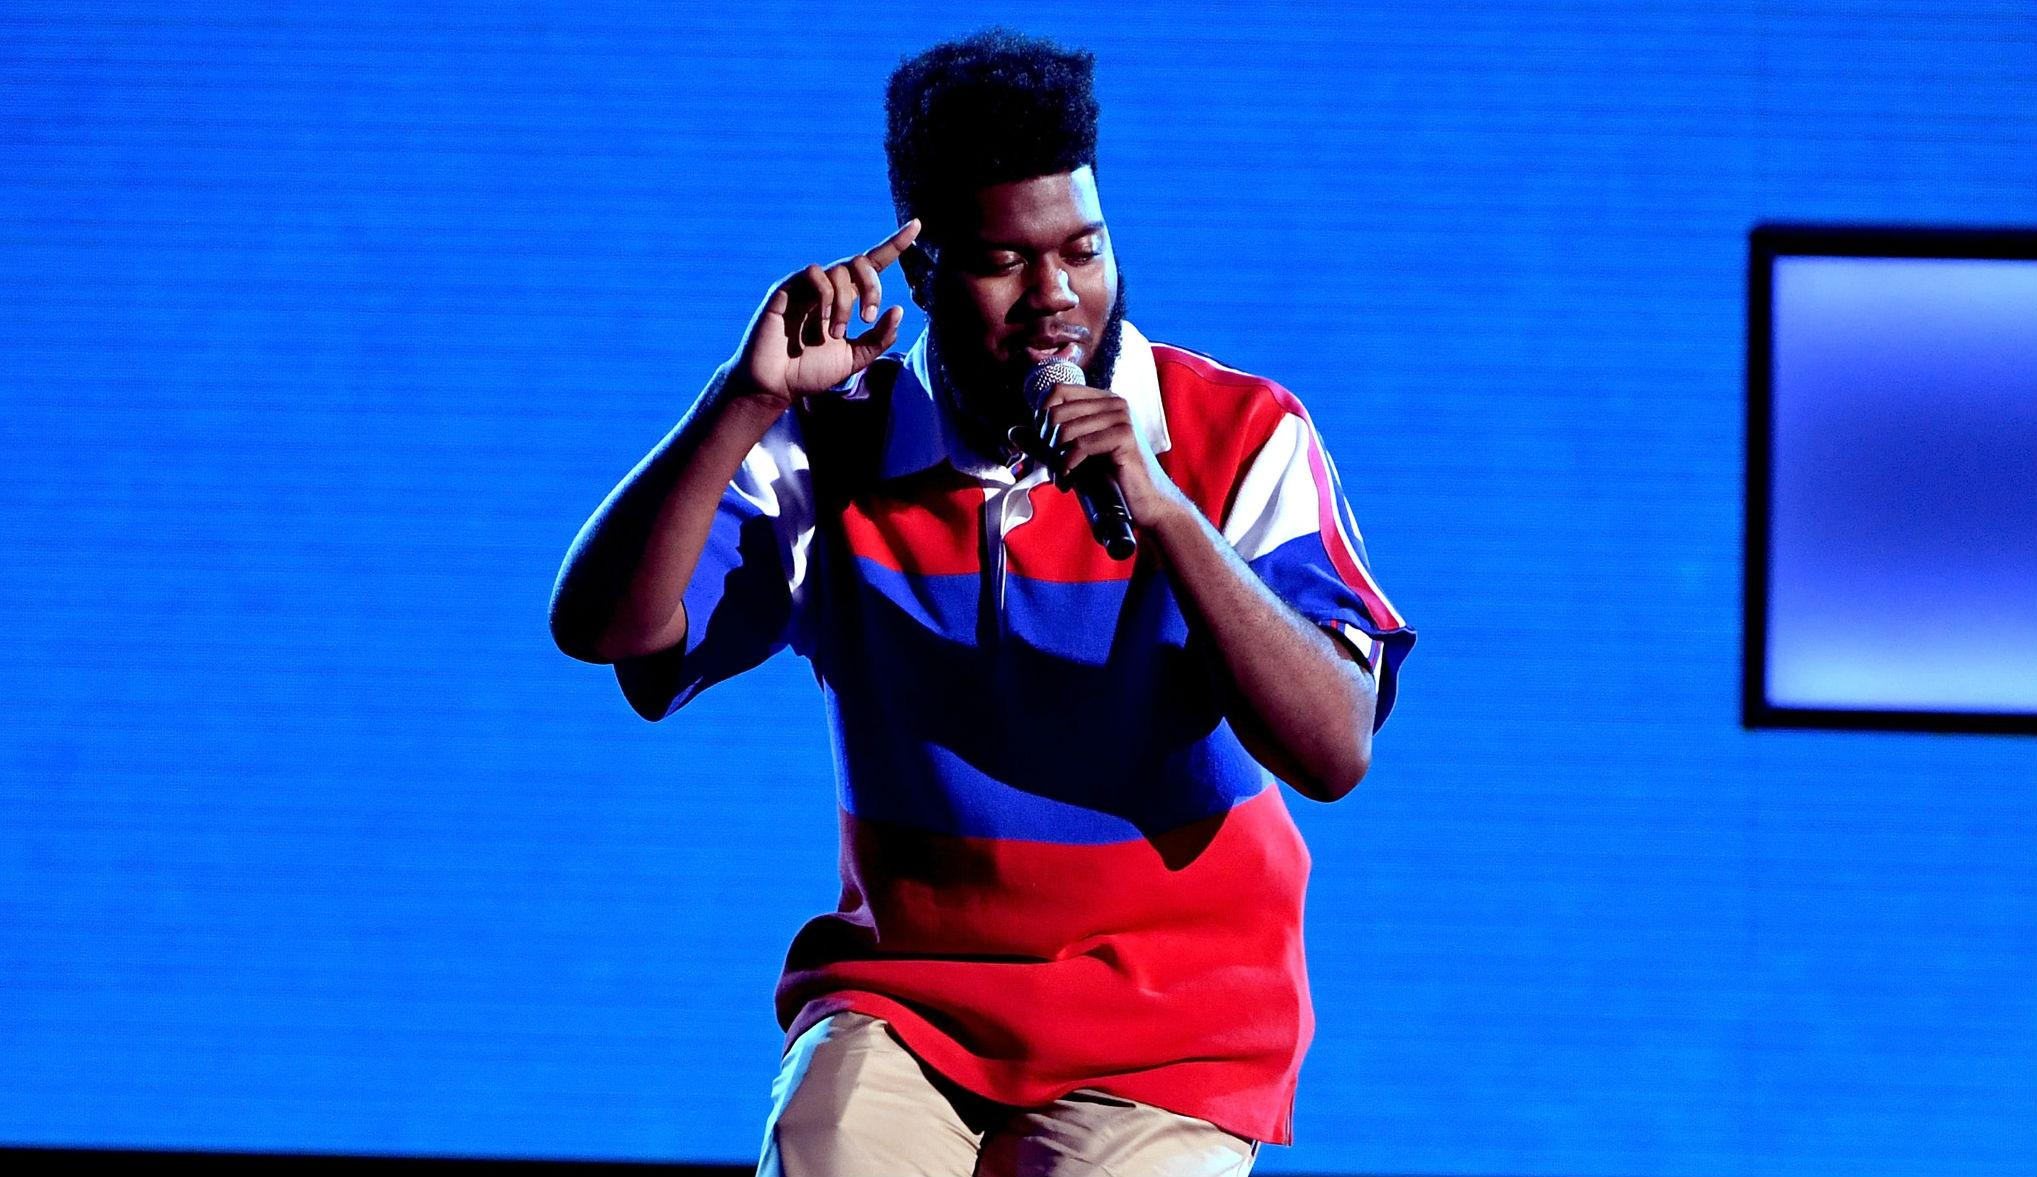 'Man, this is insane': rising R&B star Khalid shocked after Grammy nods